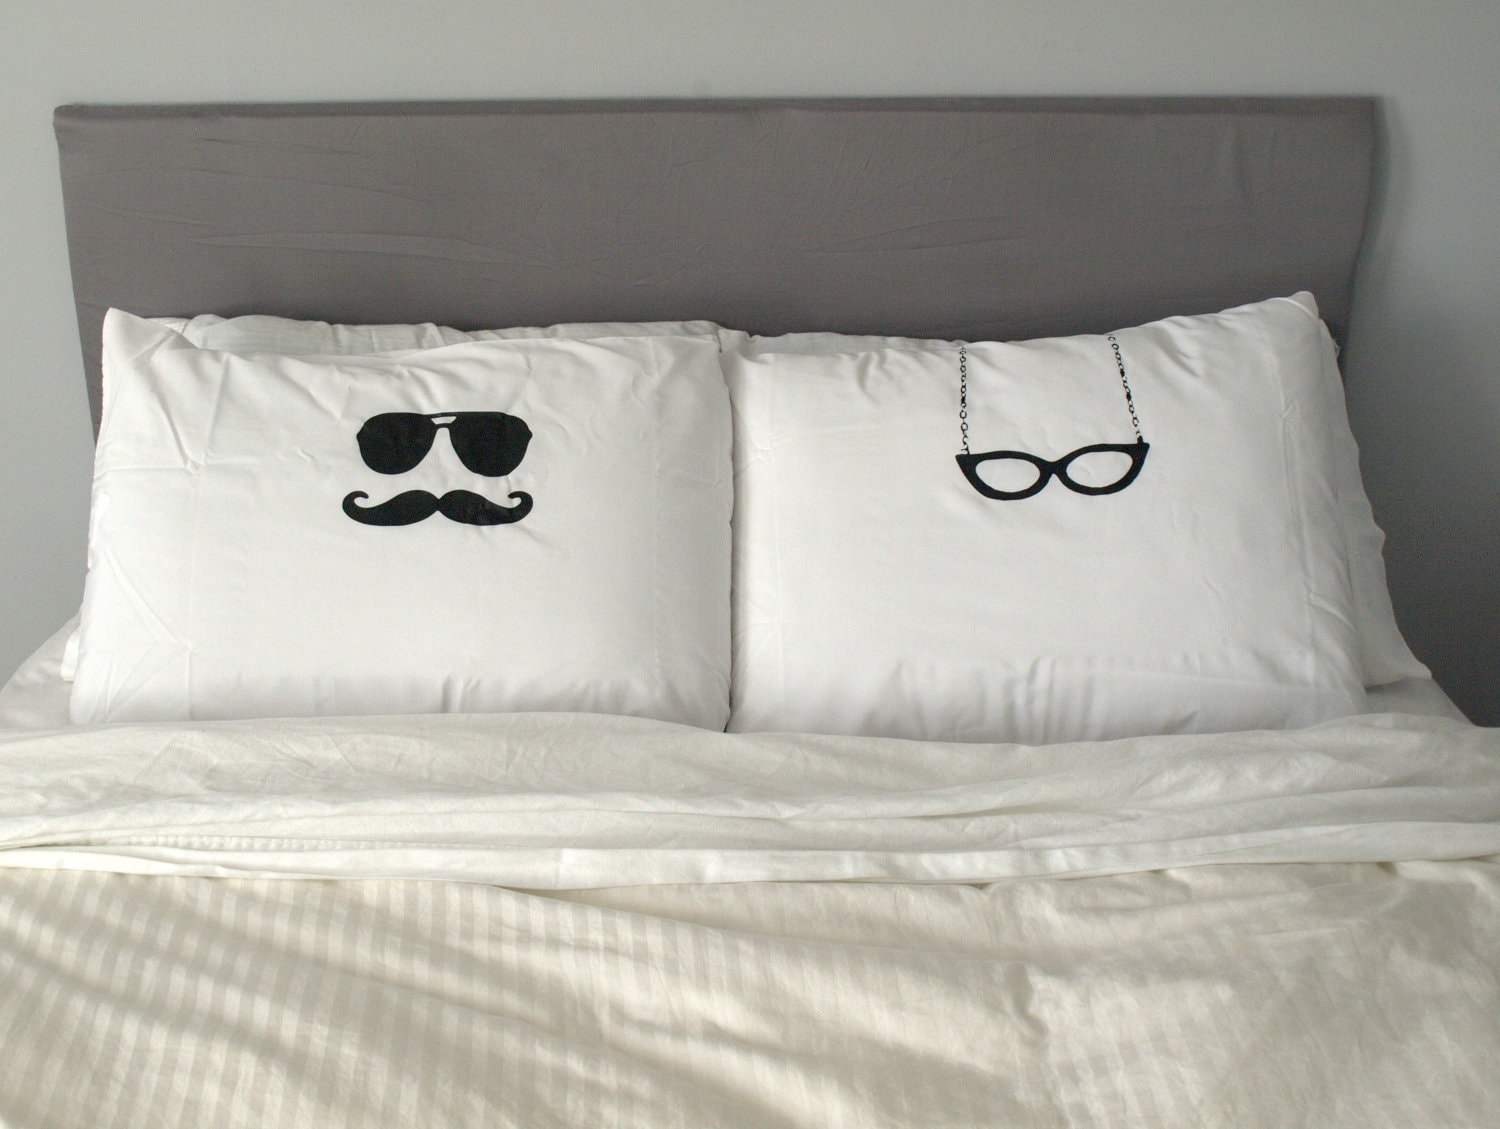 his-and-hers-pillows-cool-pillow-cases-glasses-unique-pillow